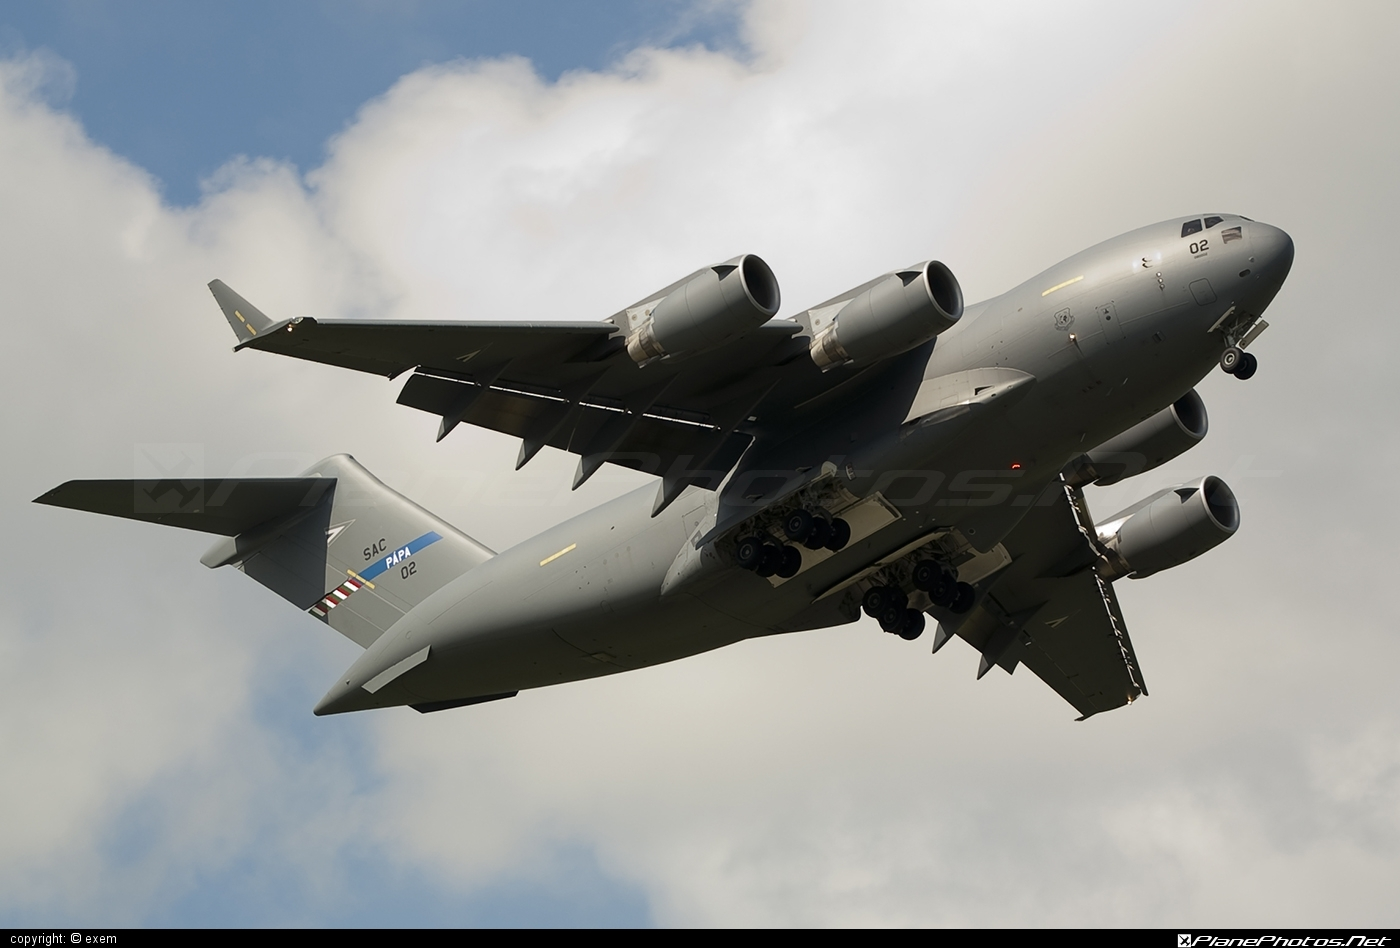 Boeing C-17A Globemaster III - 02 operated by NATO Strategic Airlift Capability (SAC) #boeing #c17 #c17globemaster #globemaster #globemasteriii #natostrategicairliftcapability #strategicairliftcapability